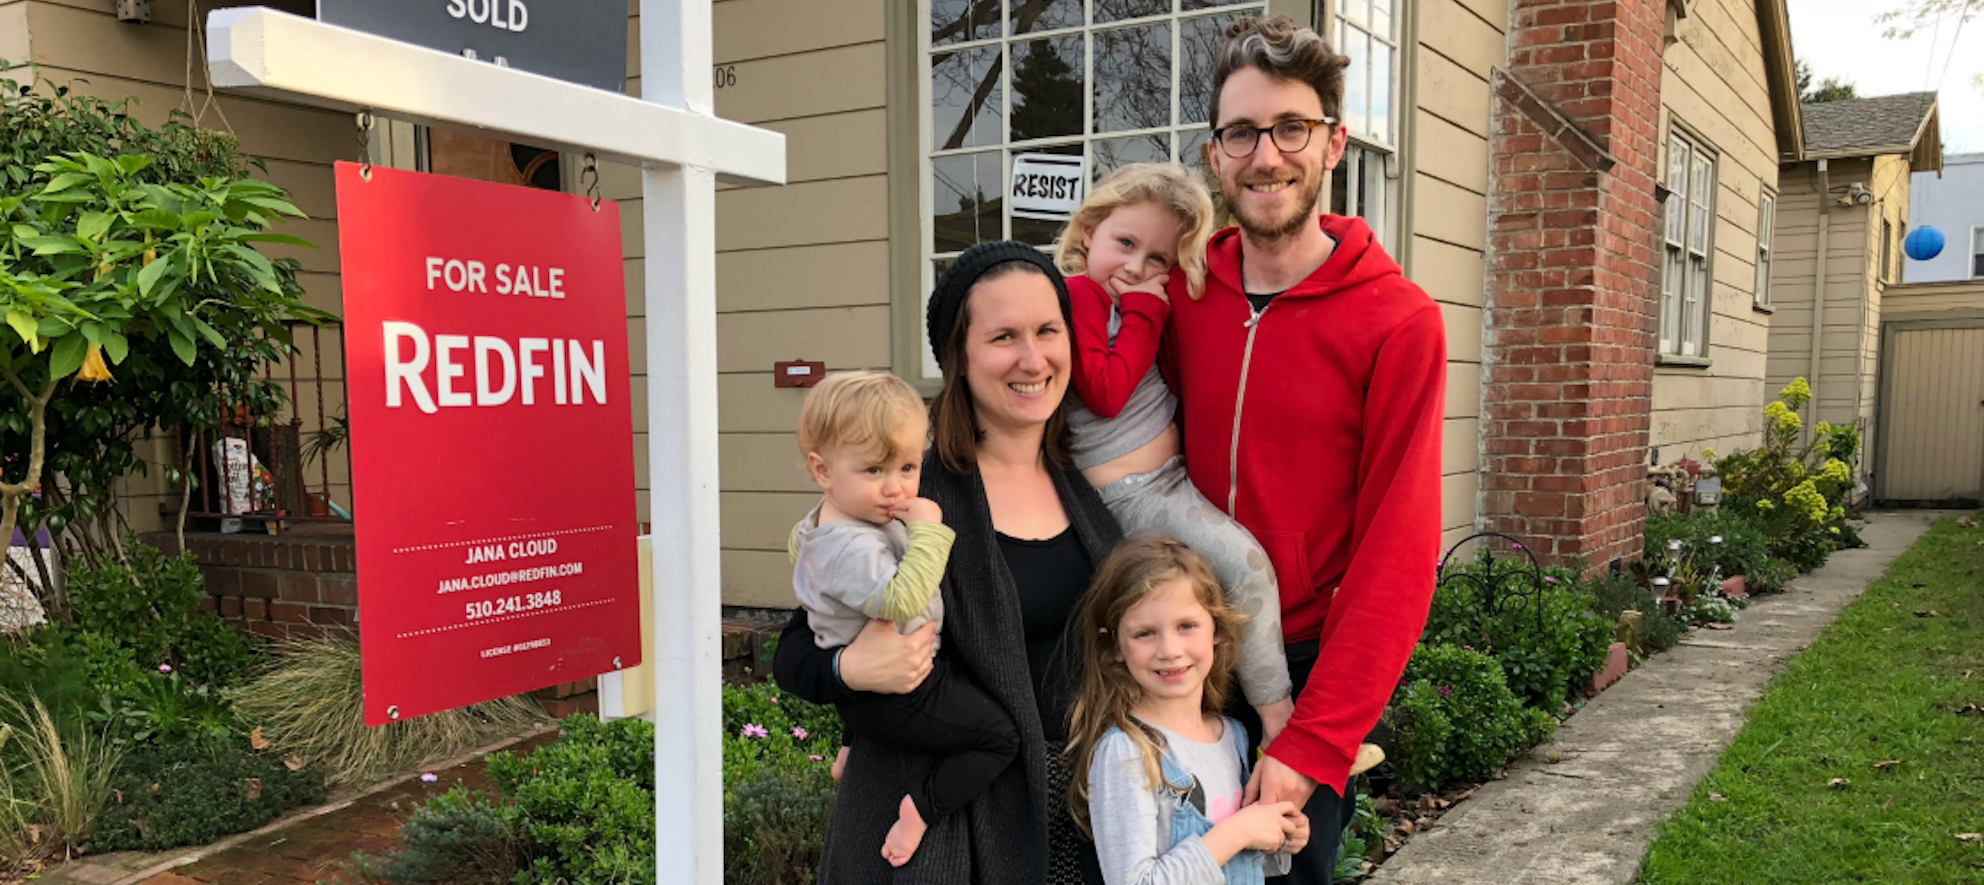 Video offer letter covering 'Our House' wins home bidding war in Berkeley